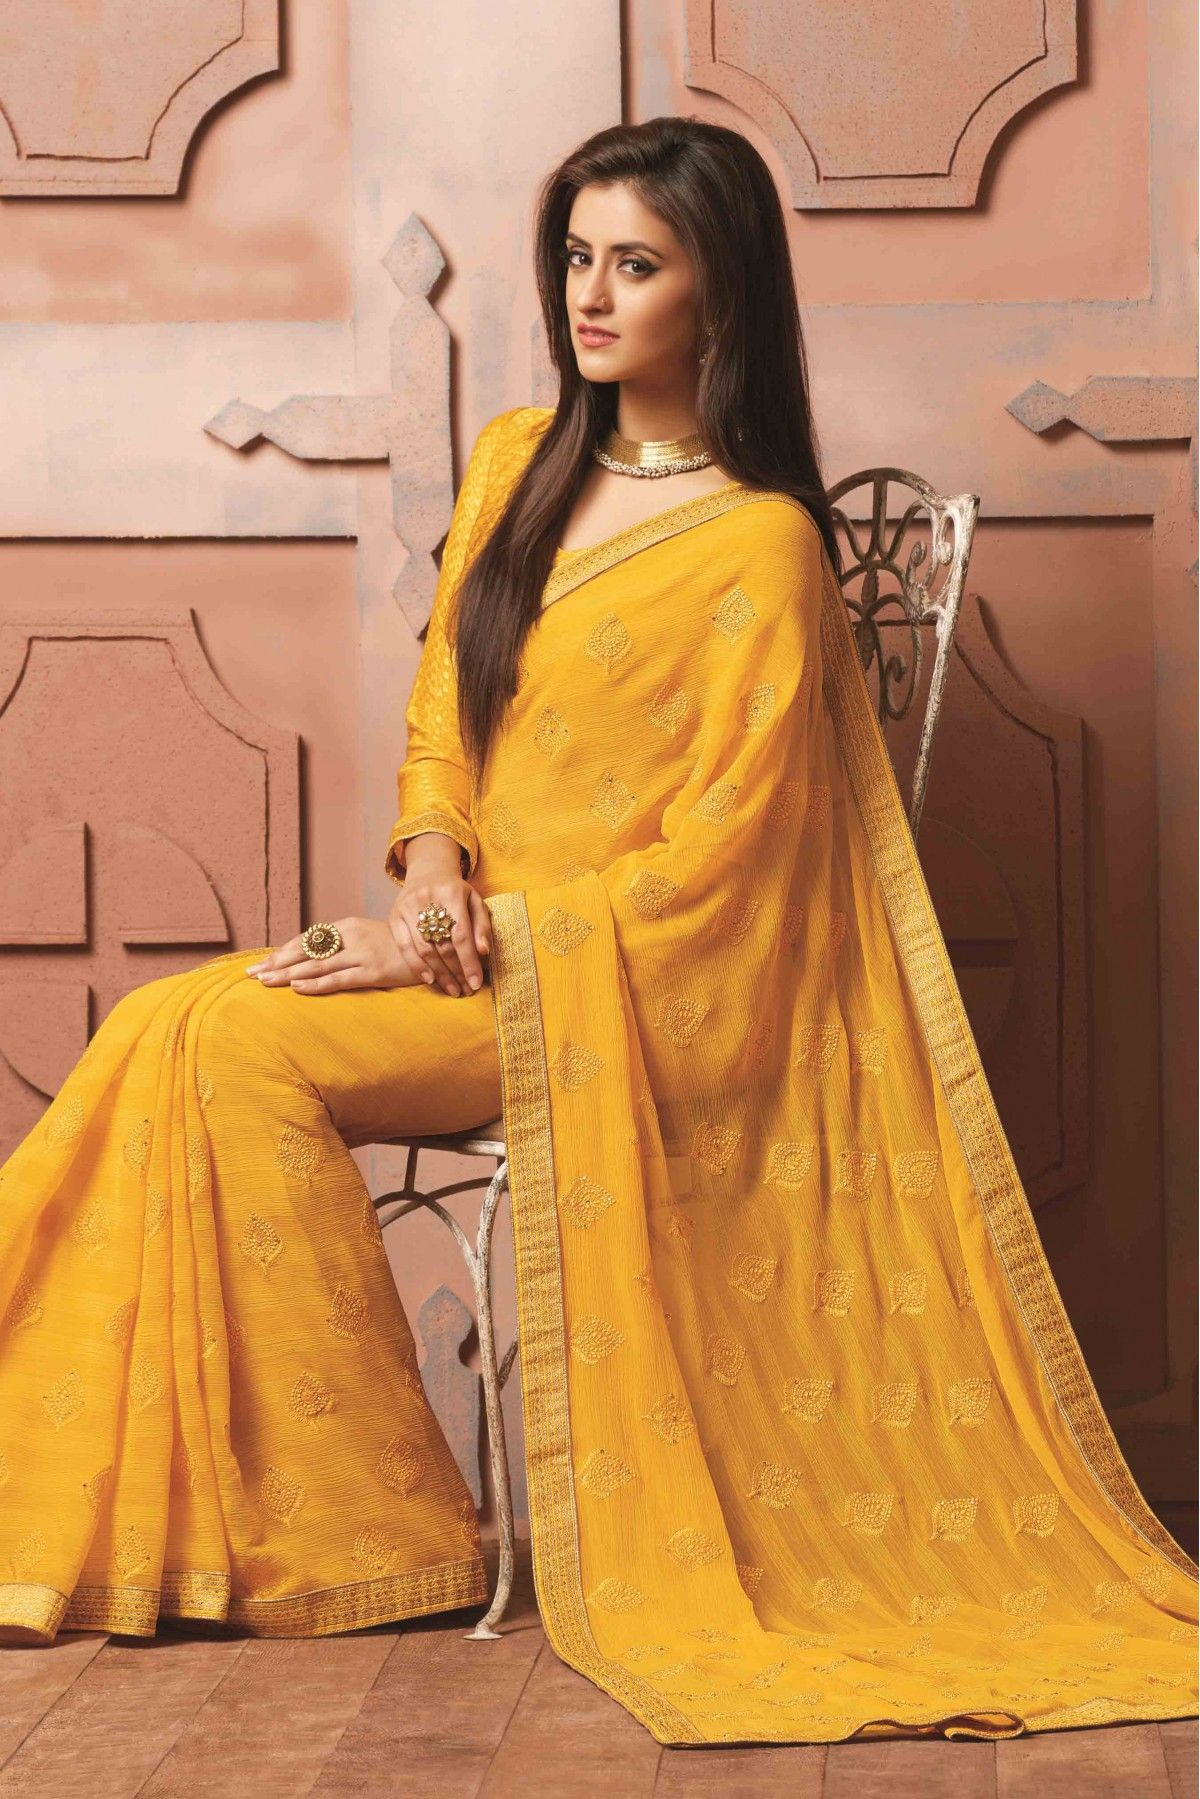 706618dfdcba82 Yellow Colour Wrinkle Chiffon Fabric Party Wear Designer Saree Comes With  Matching Blouse. This Saree Is Crafted With Embroidery,Lace Work.